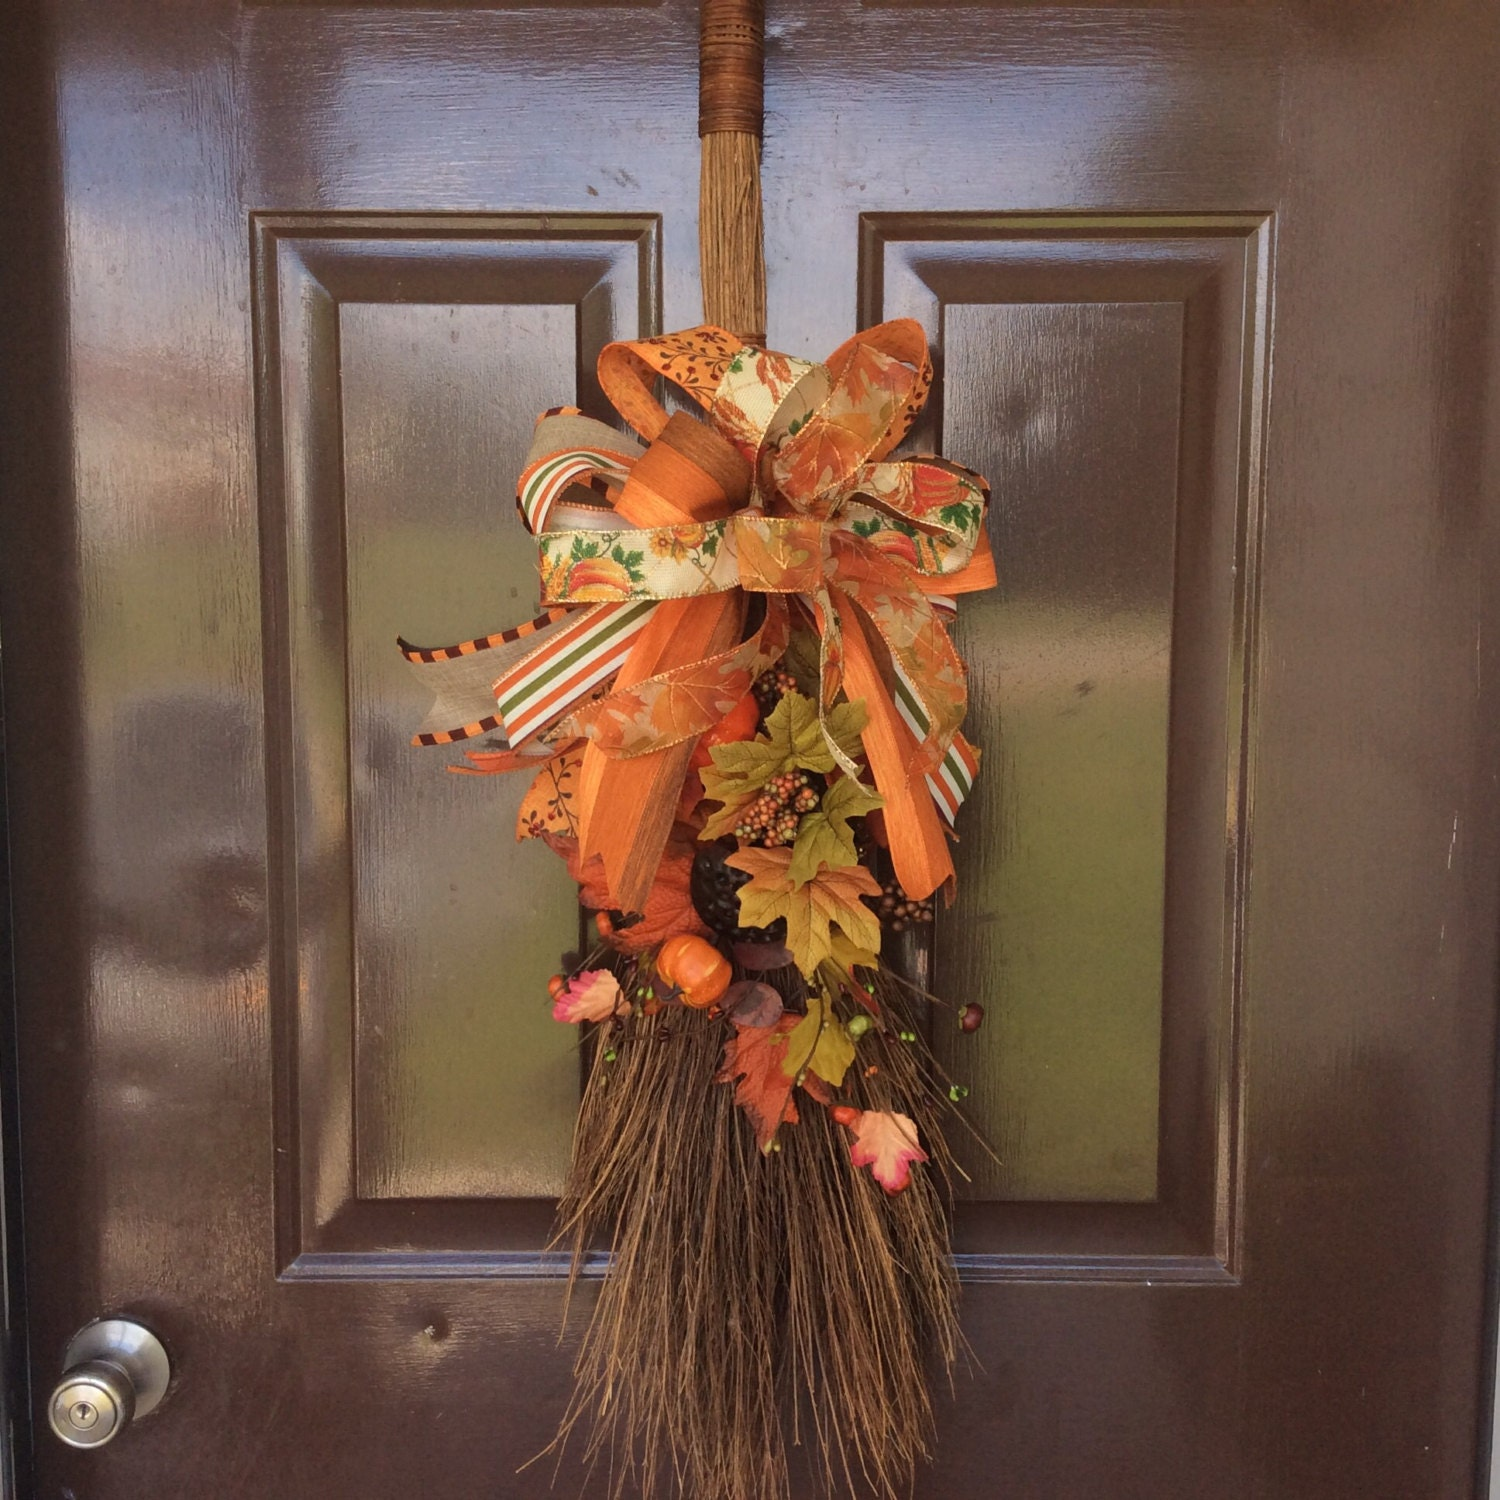 Decorate A Picture: Fall Broom Decor Fall Decorations Fallbroom Arrangement